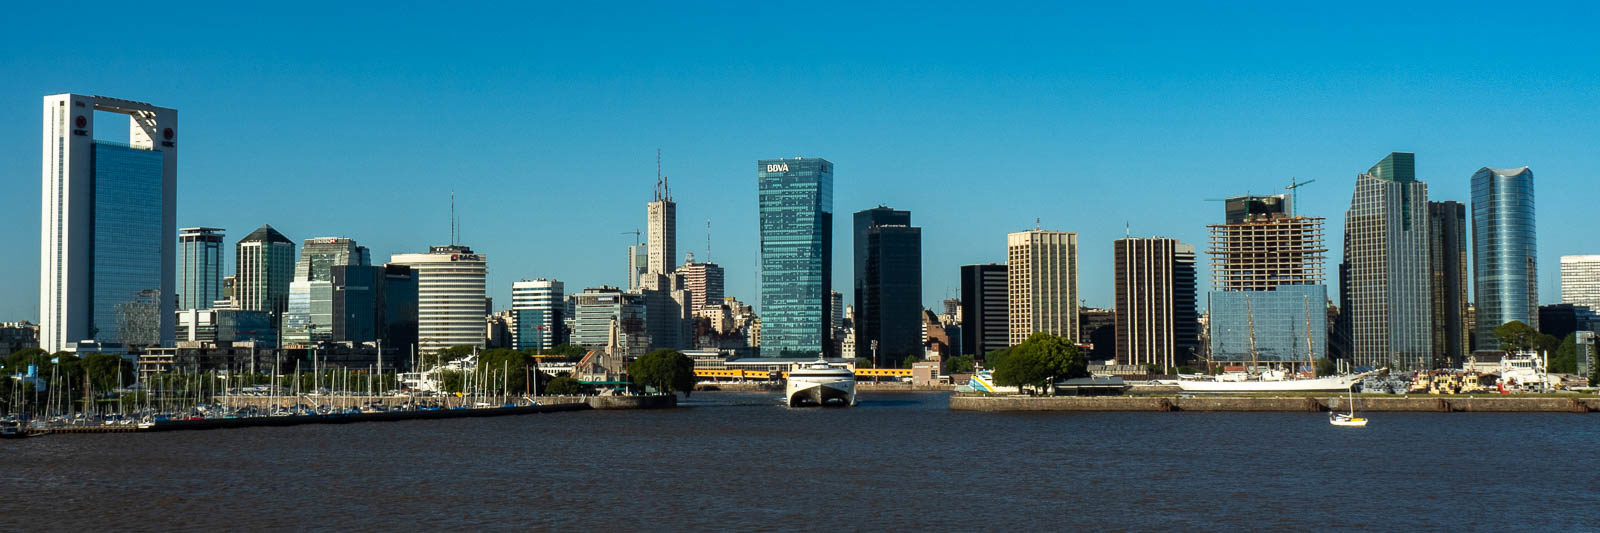 Skyline of Buenos Aires seen from the water